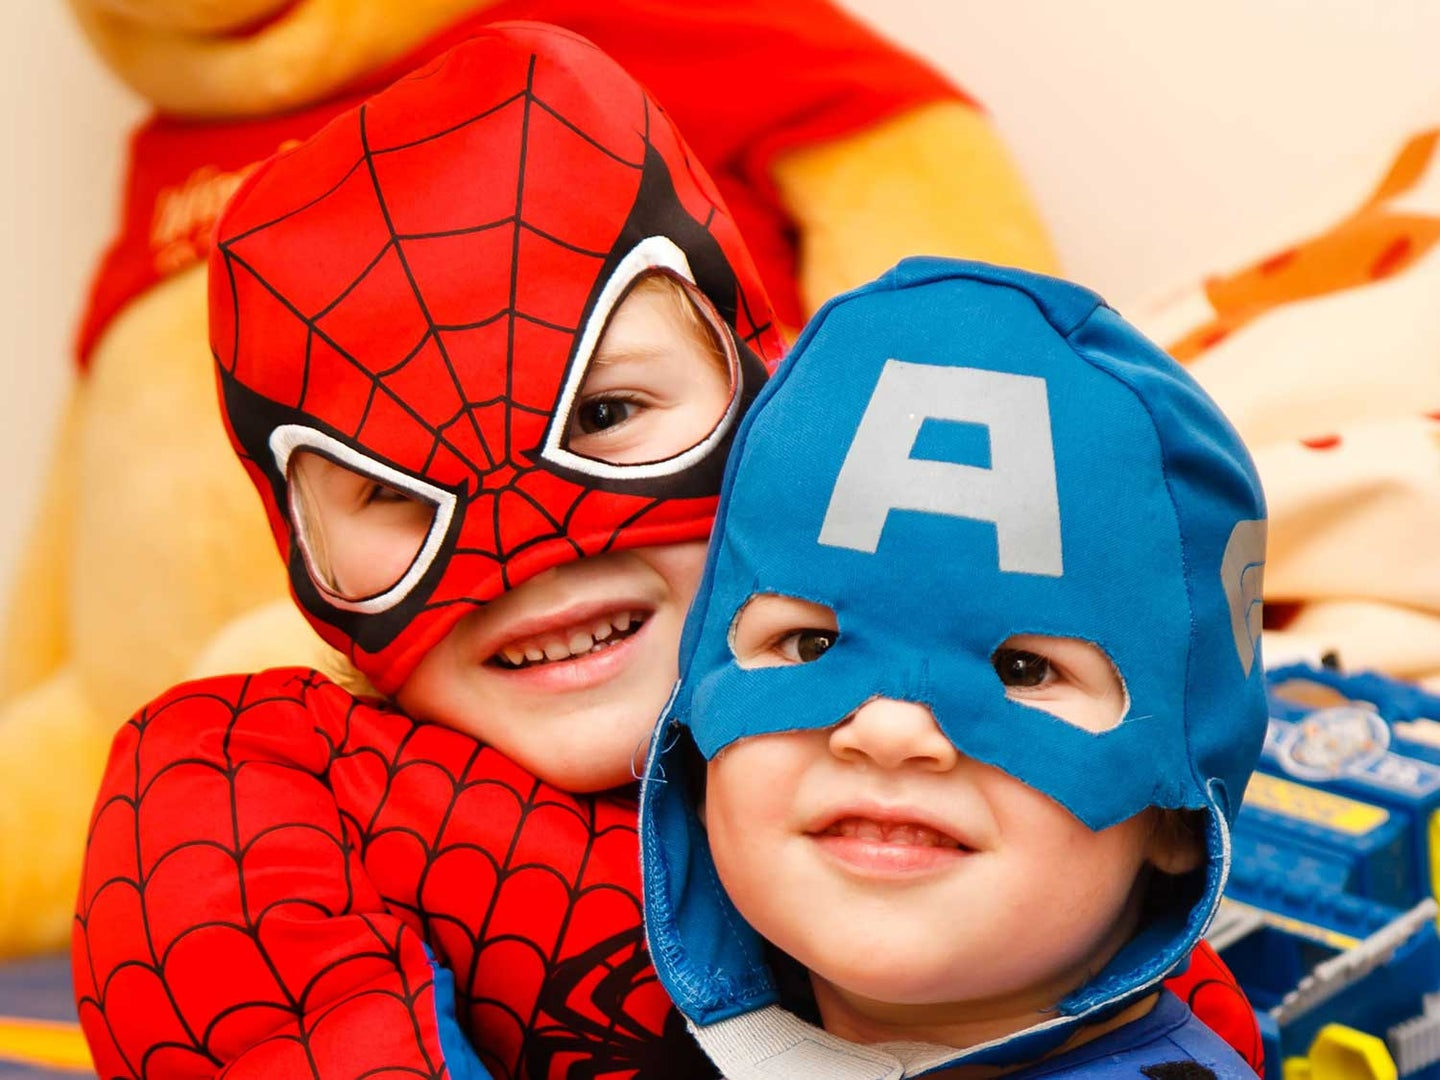 Kids wearing Spiderman and Captain America costumes.